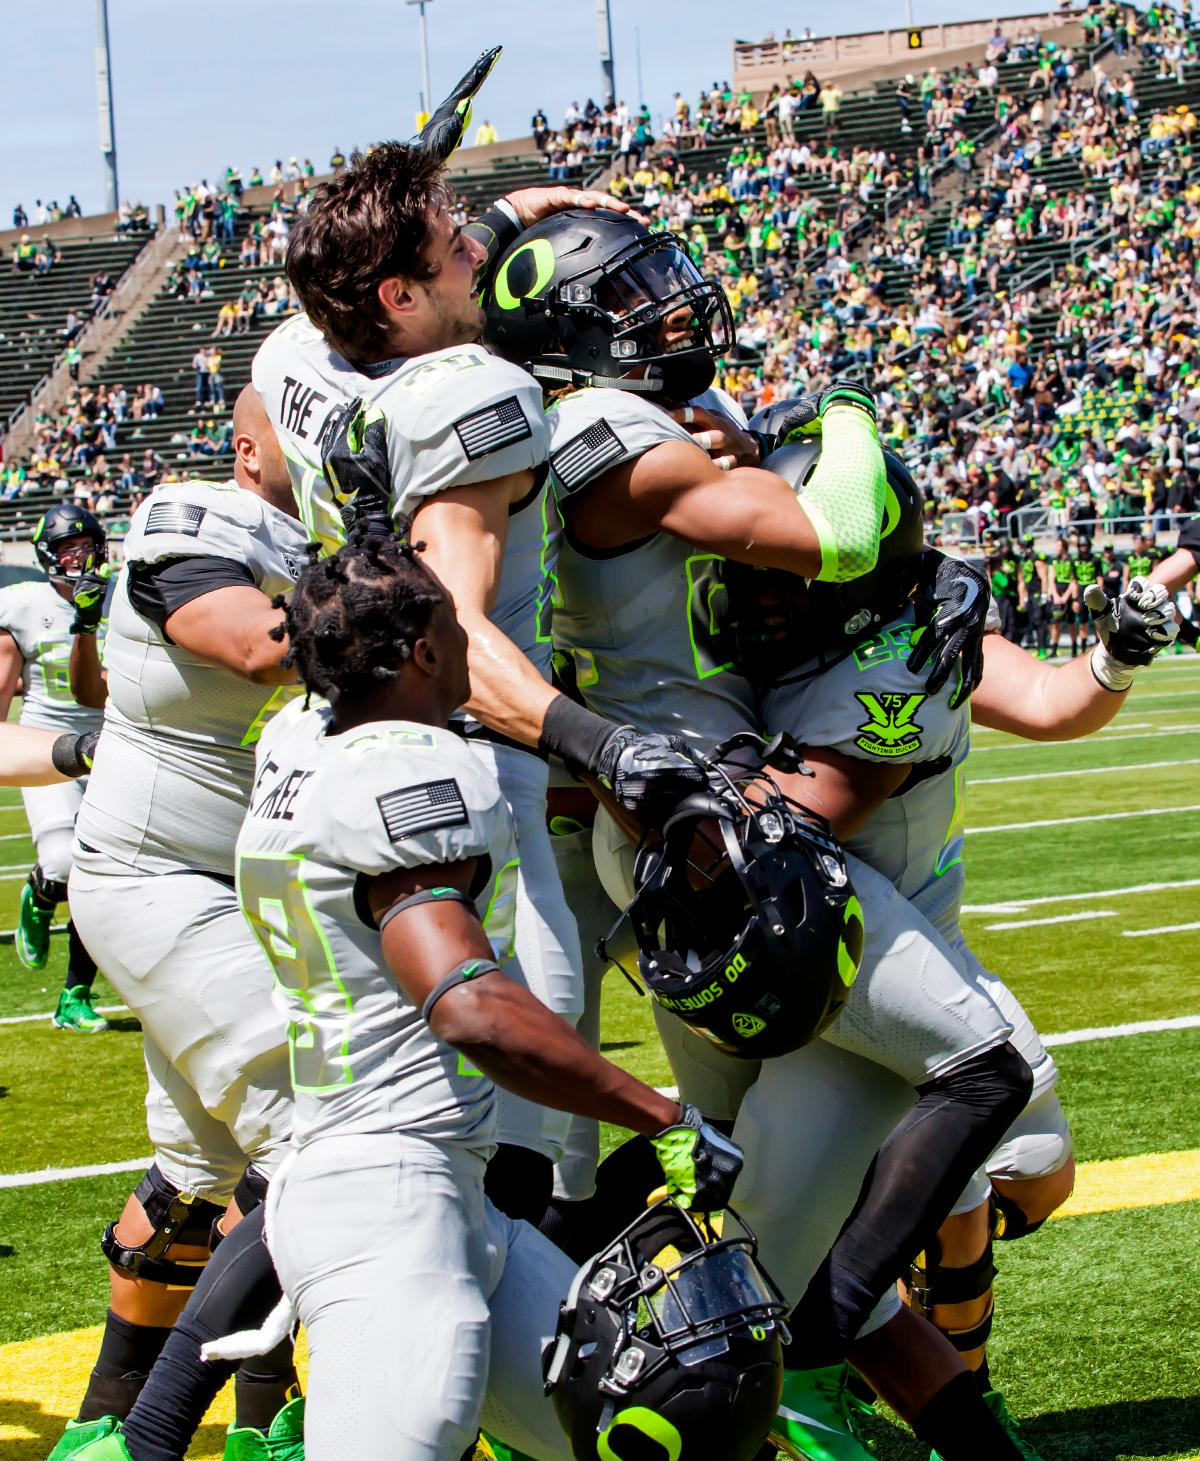 A group of Team Free players celebrate a touchdown by Team Free wide reciever Darren Carrington (#22). The 2017 Oregon Ducks Spring Game provided fans their first glimpse at the team under new Head Coach Willie Taggart's direction. Team Free defeated Team Brave 34-11 on a sunny dat at Autzen Stadium in Eugene, Oregon. Photo by Ben Lonergan, Oregon News Lab